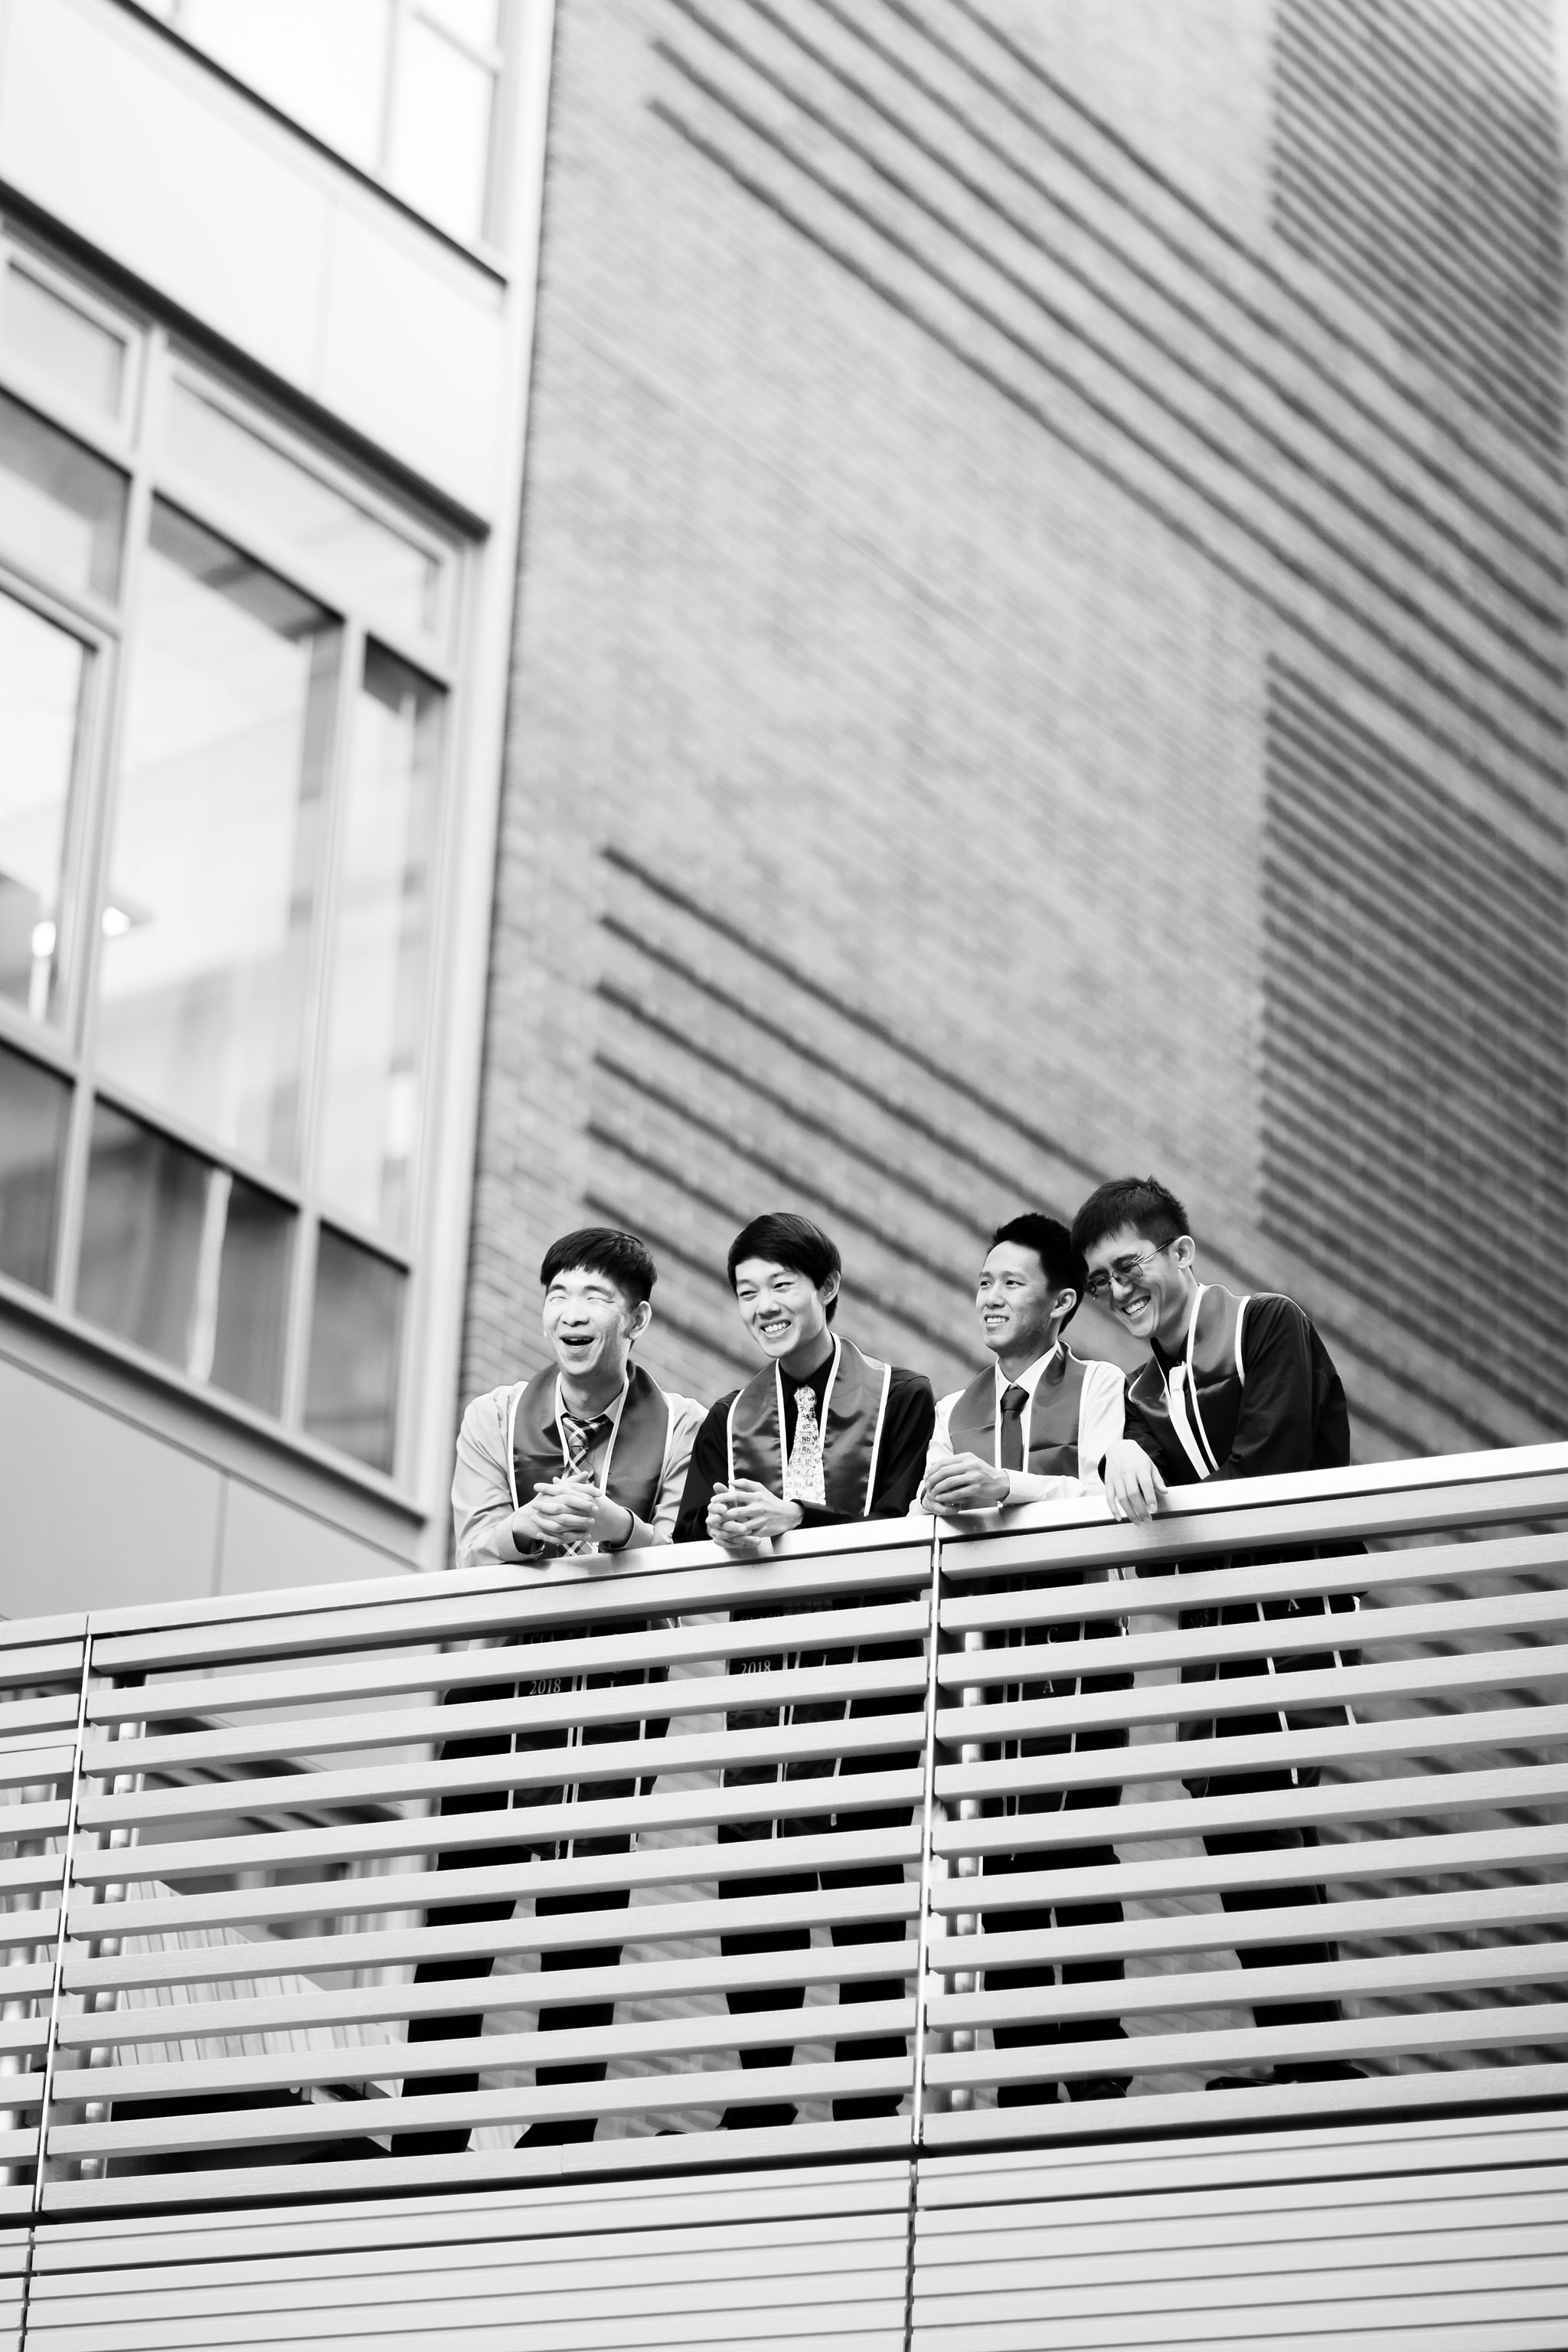 los-angeles-ucla-senior-graduation-portraits-epic-environmental-candid-laughing-friends-black-and-white